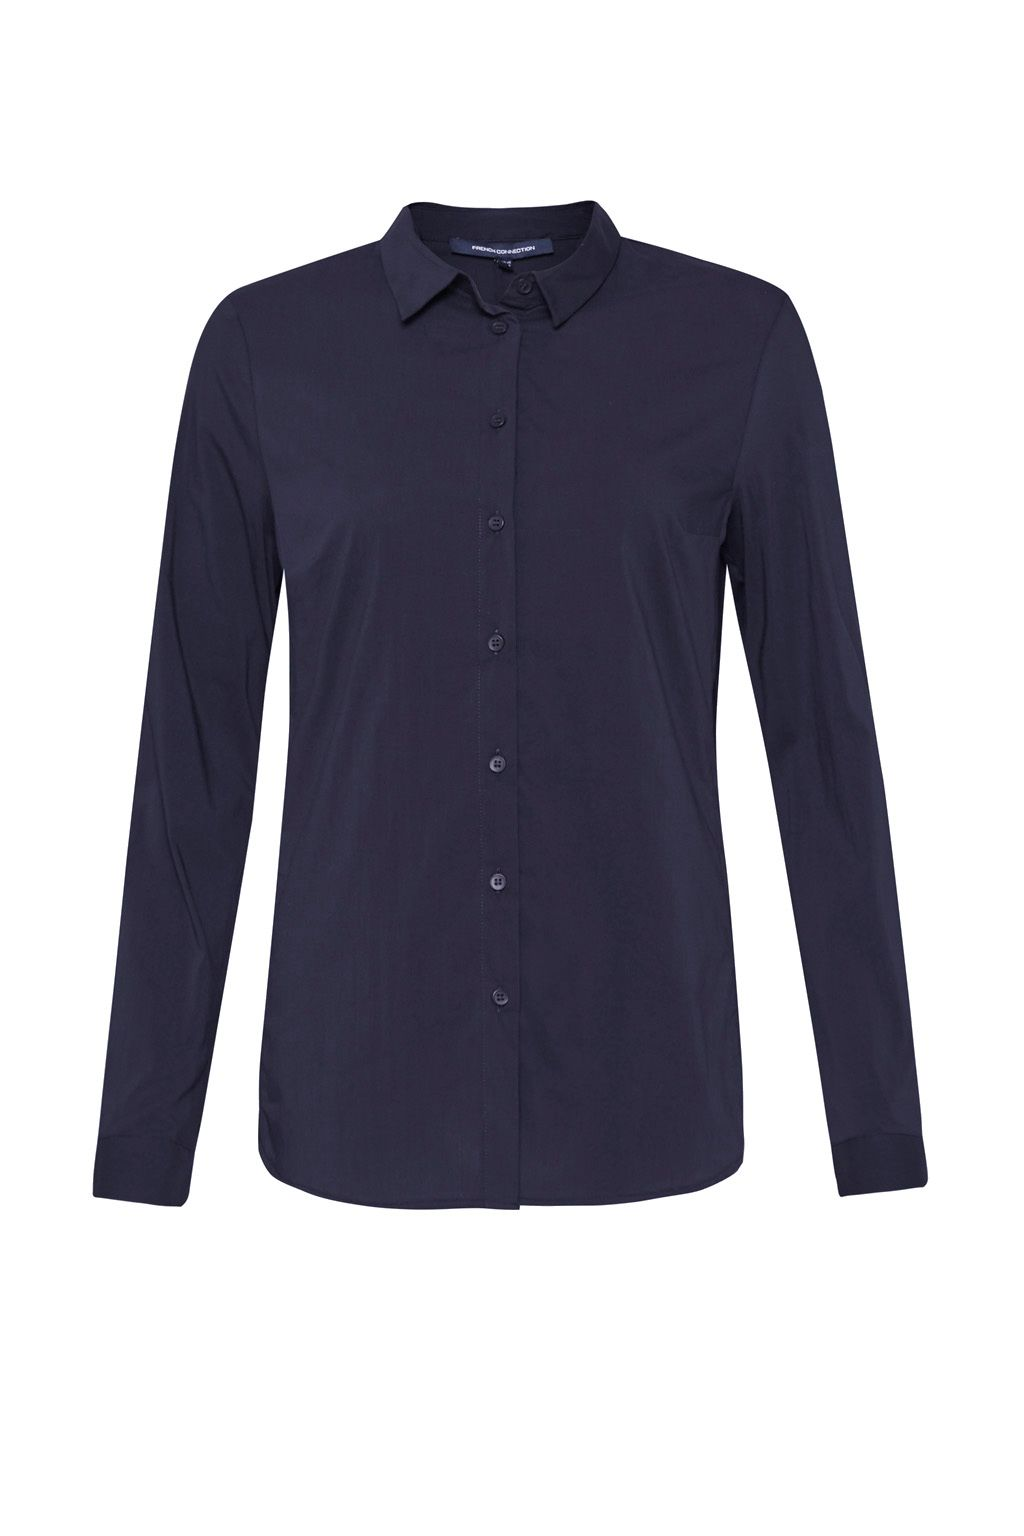 French Connection Eastside Cotton Shirt, Blue